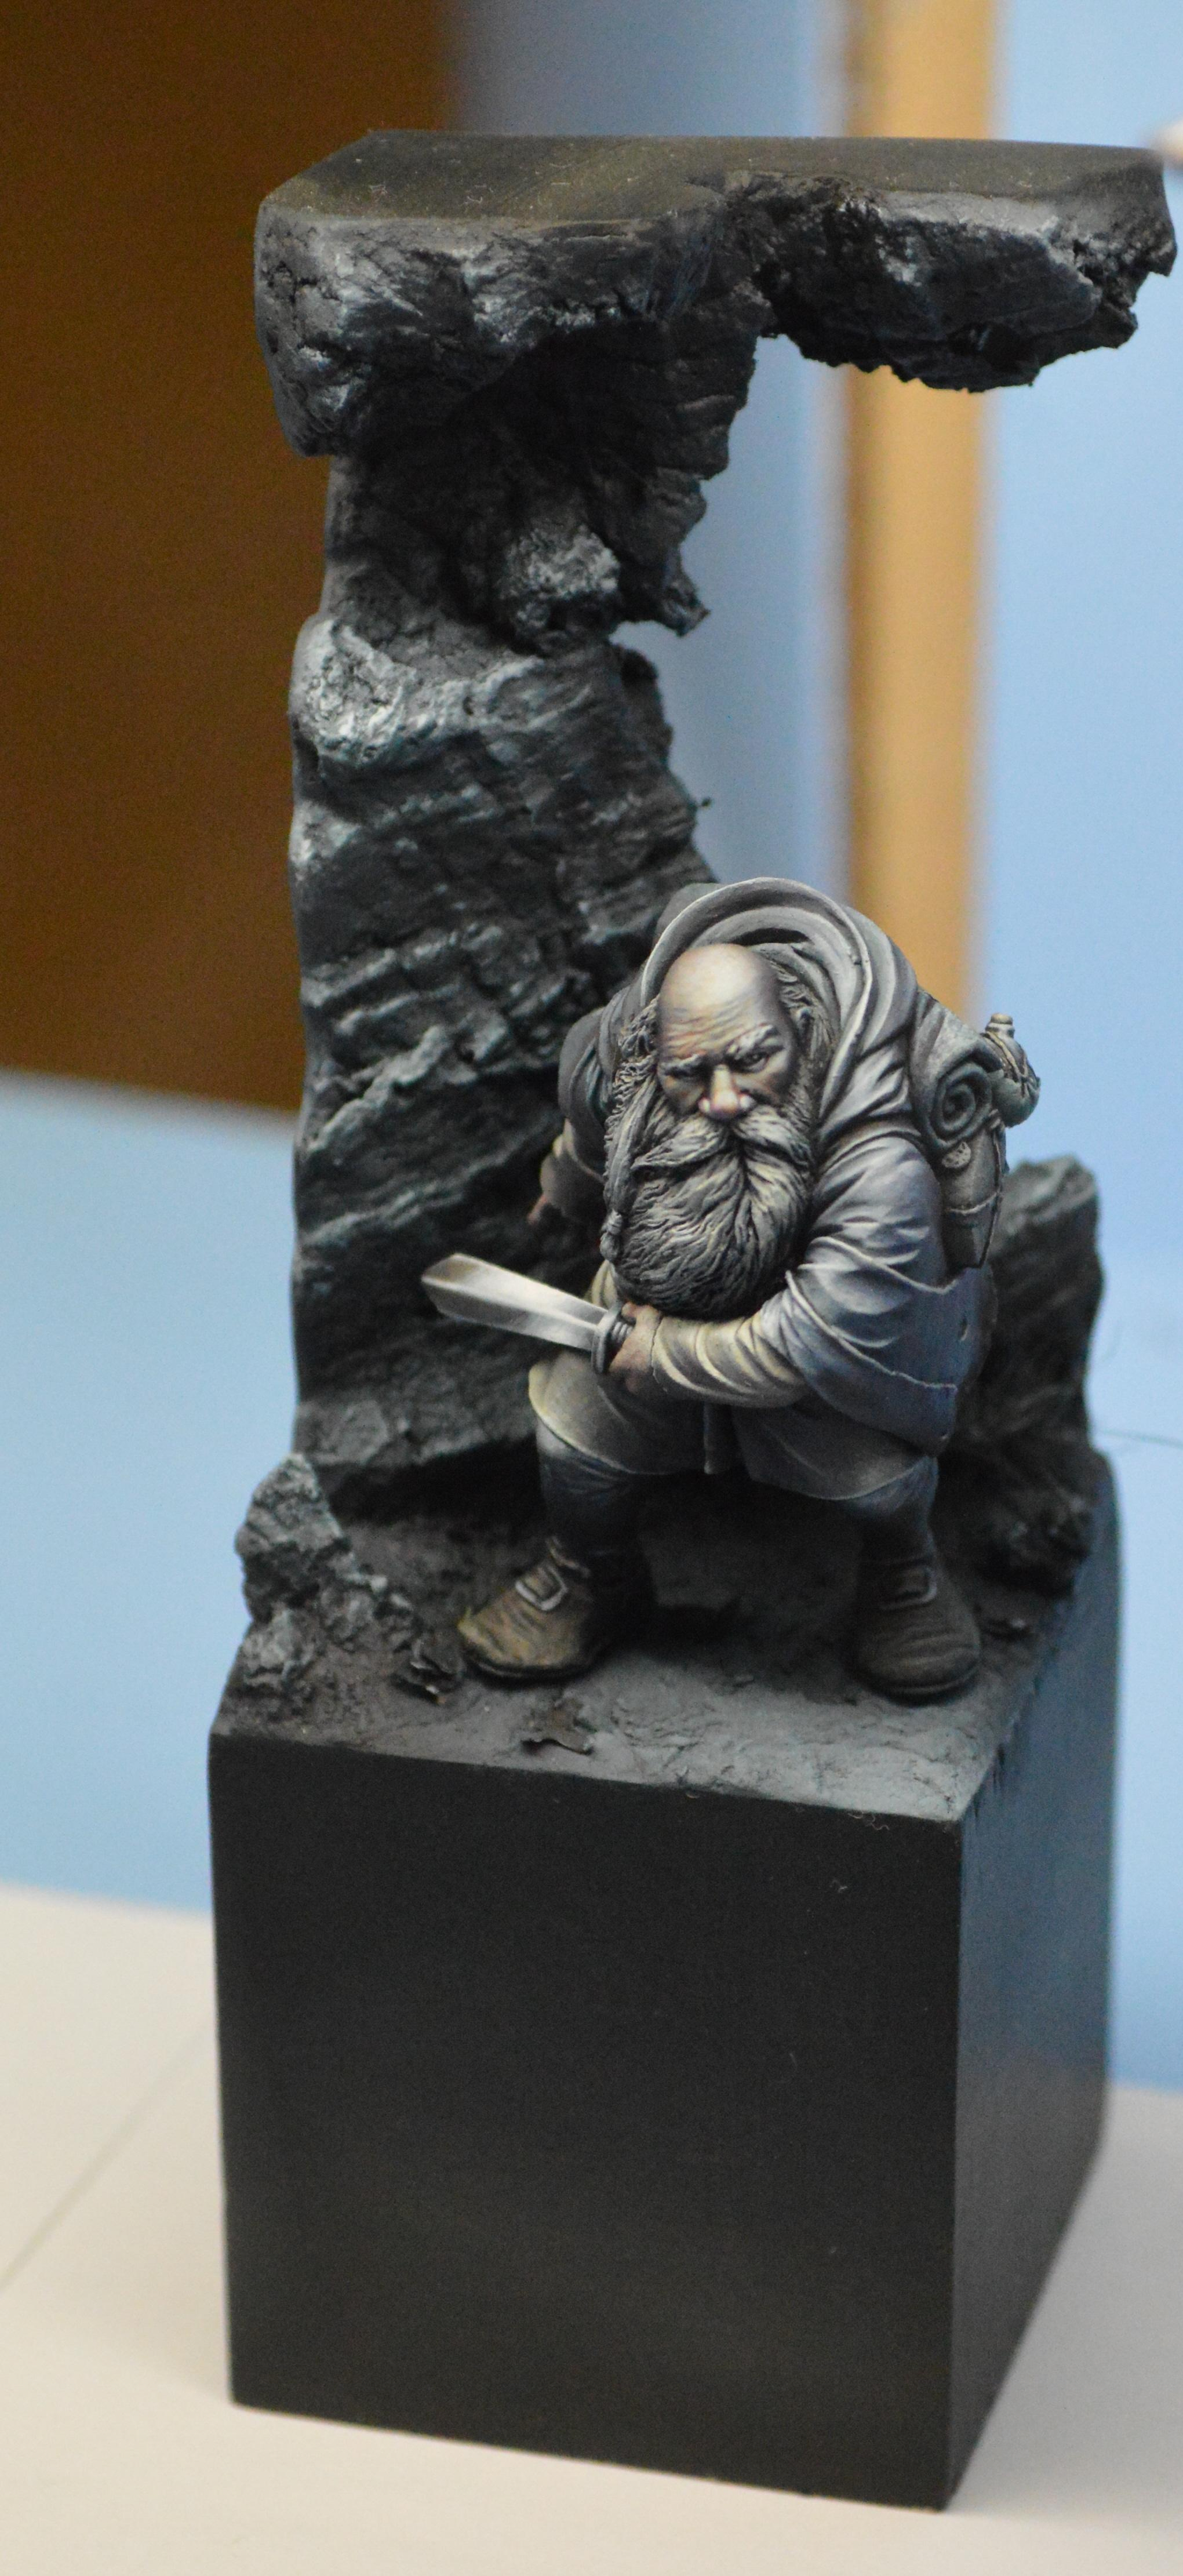 Adepticon 2014, Crystal Brush, Dwarves, Large Scale